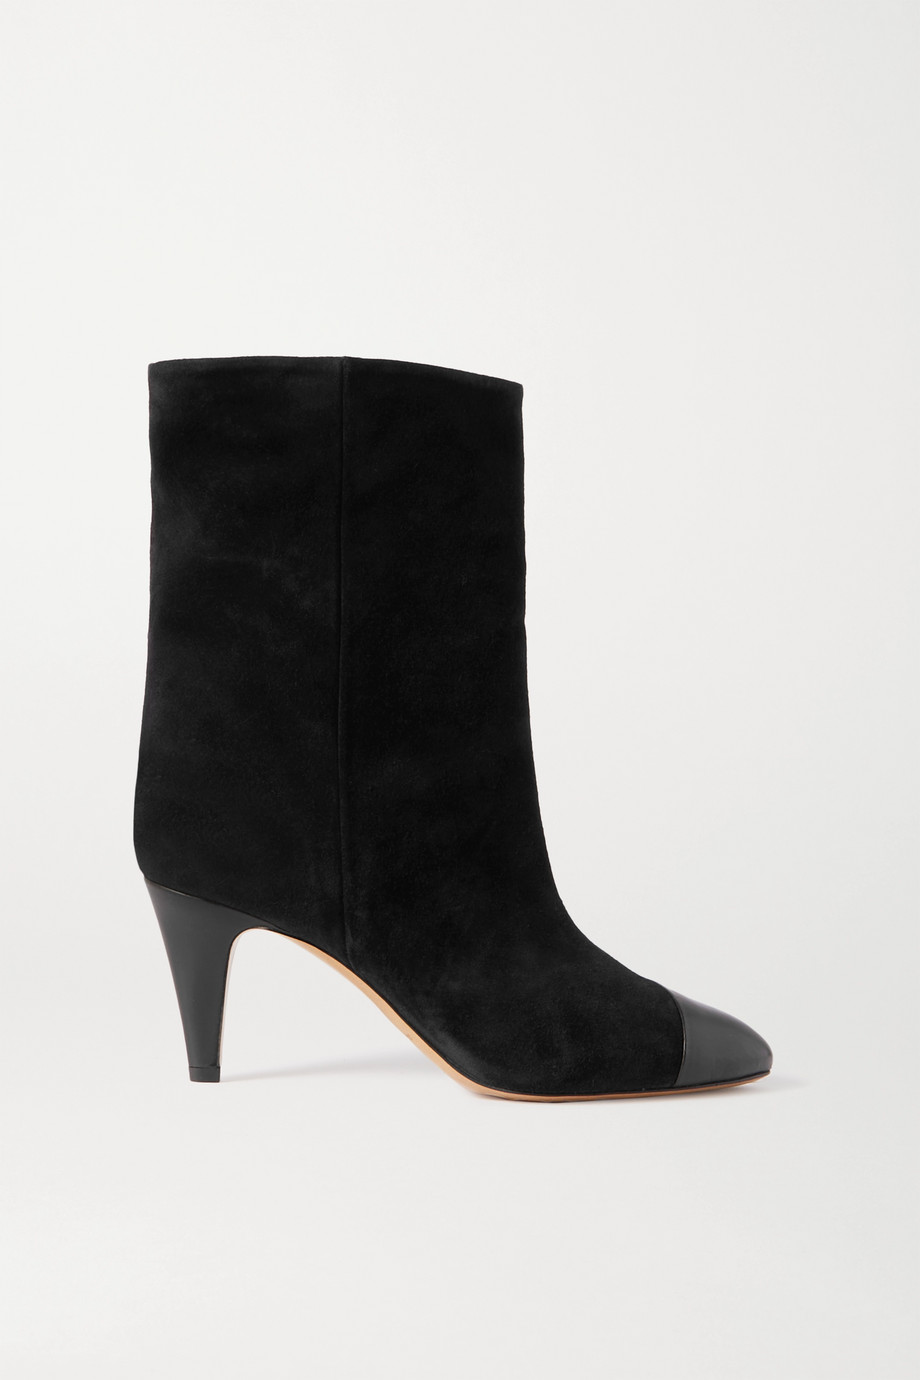 Isabel Marant Bottines en daim à finitions en cuir Lacco